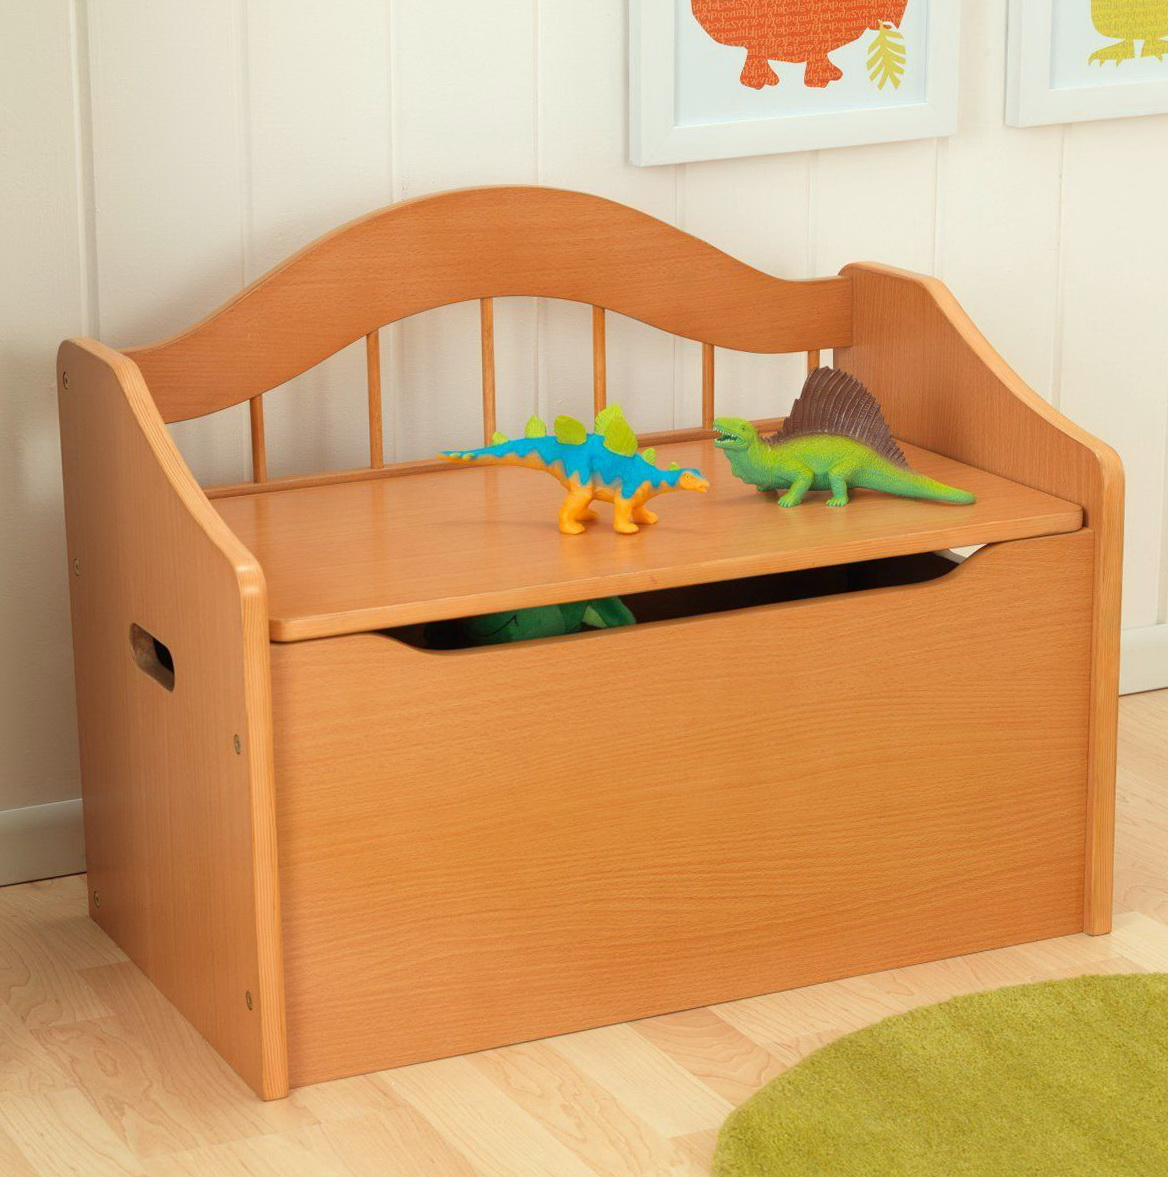 Toy chest bench ikea home design ideas for Toy chest ikea